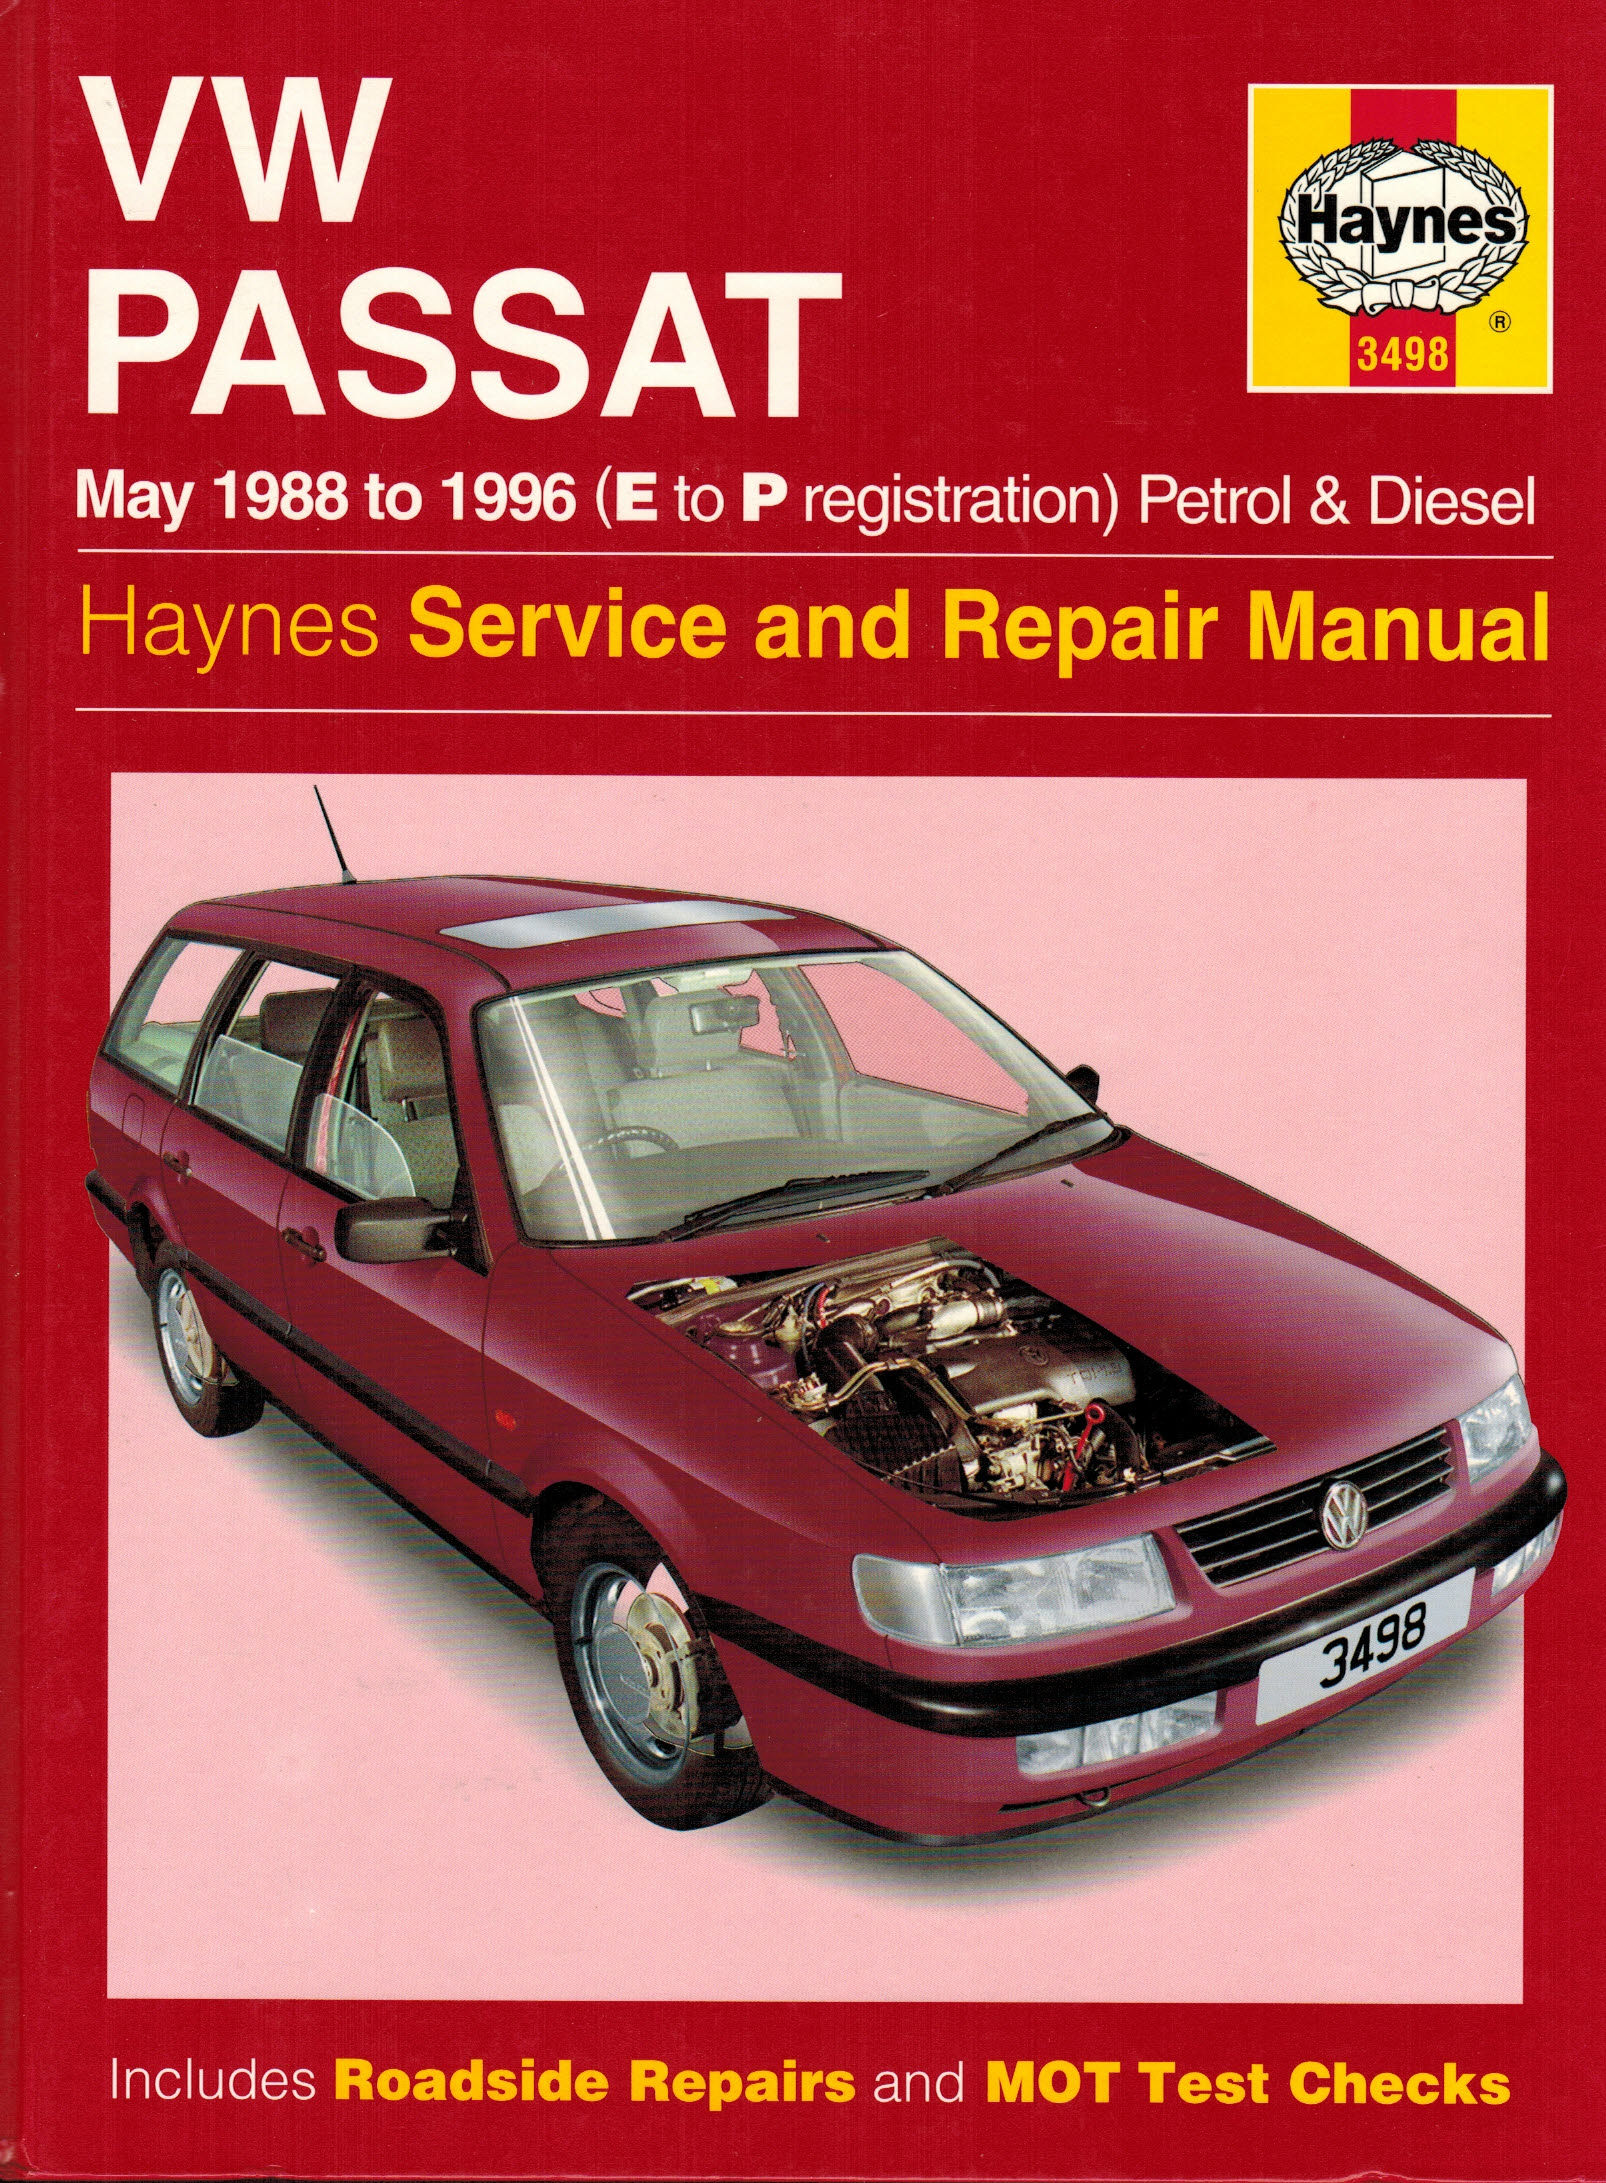 VW Passat Petrol and Diesel (May 1988-96 E to P registration) Service and  Repair (Haynes Service & Repair Manual 3498) by R. M. Jex; I. M. Coomber ...